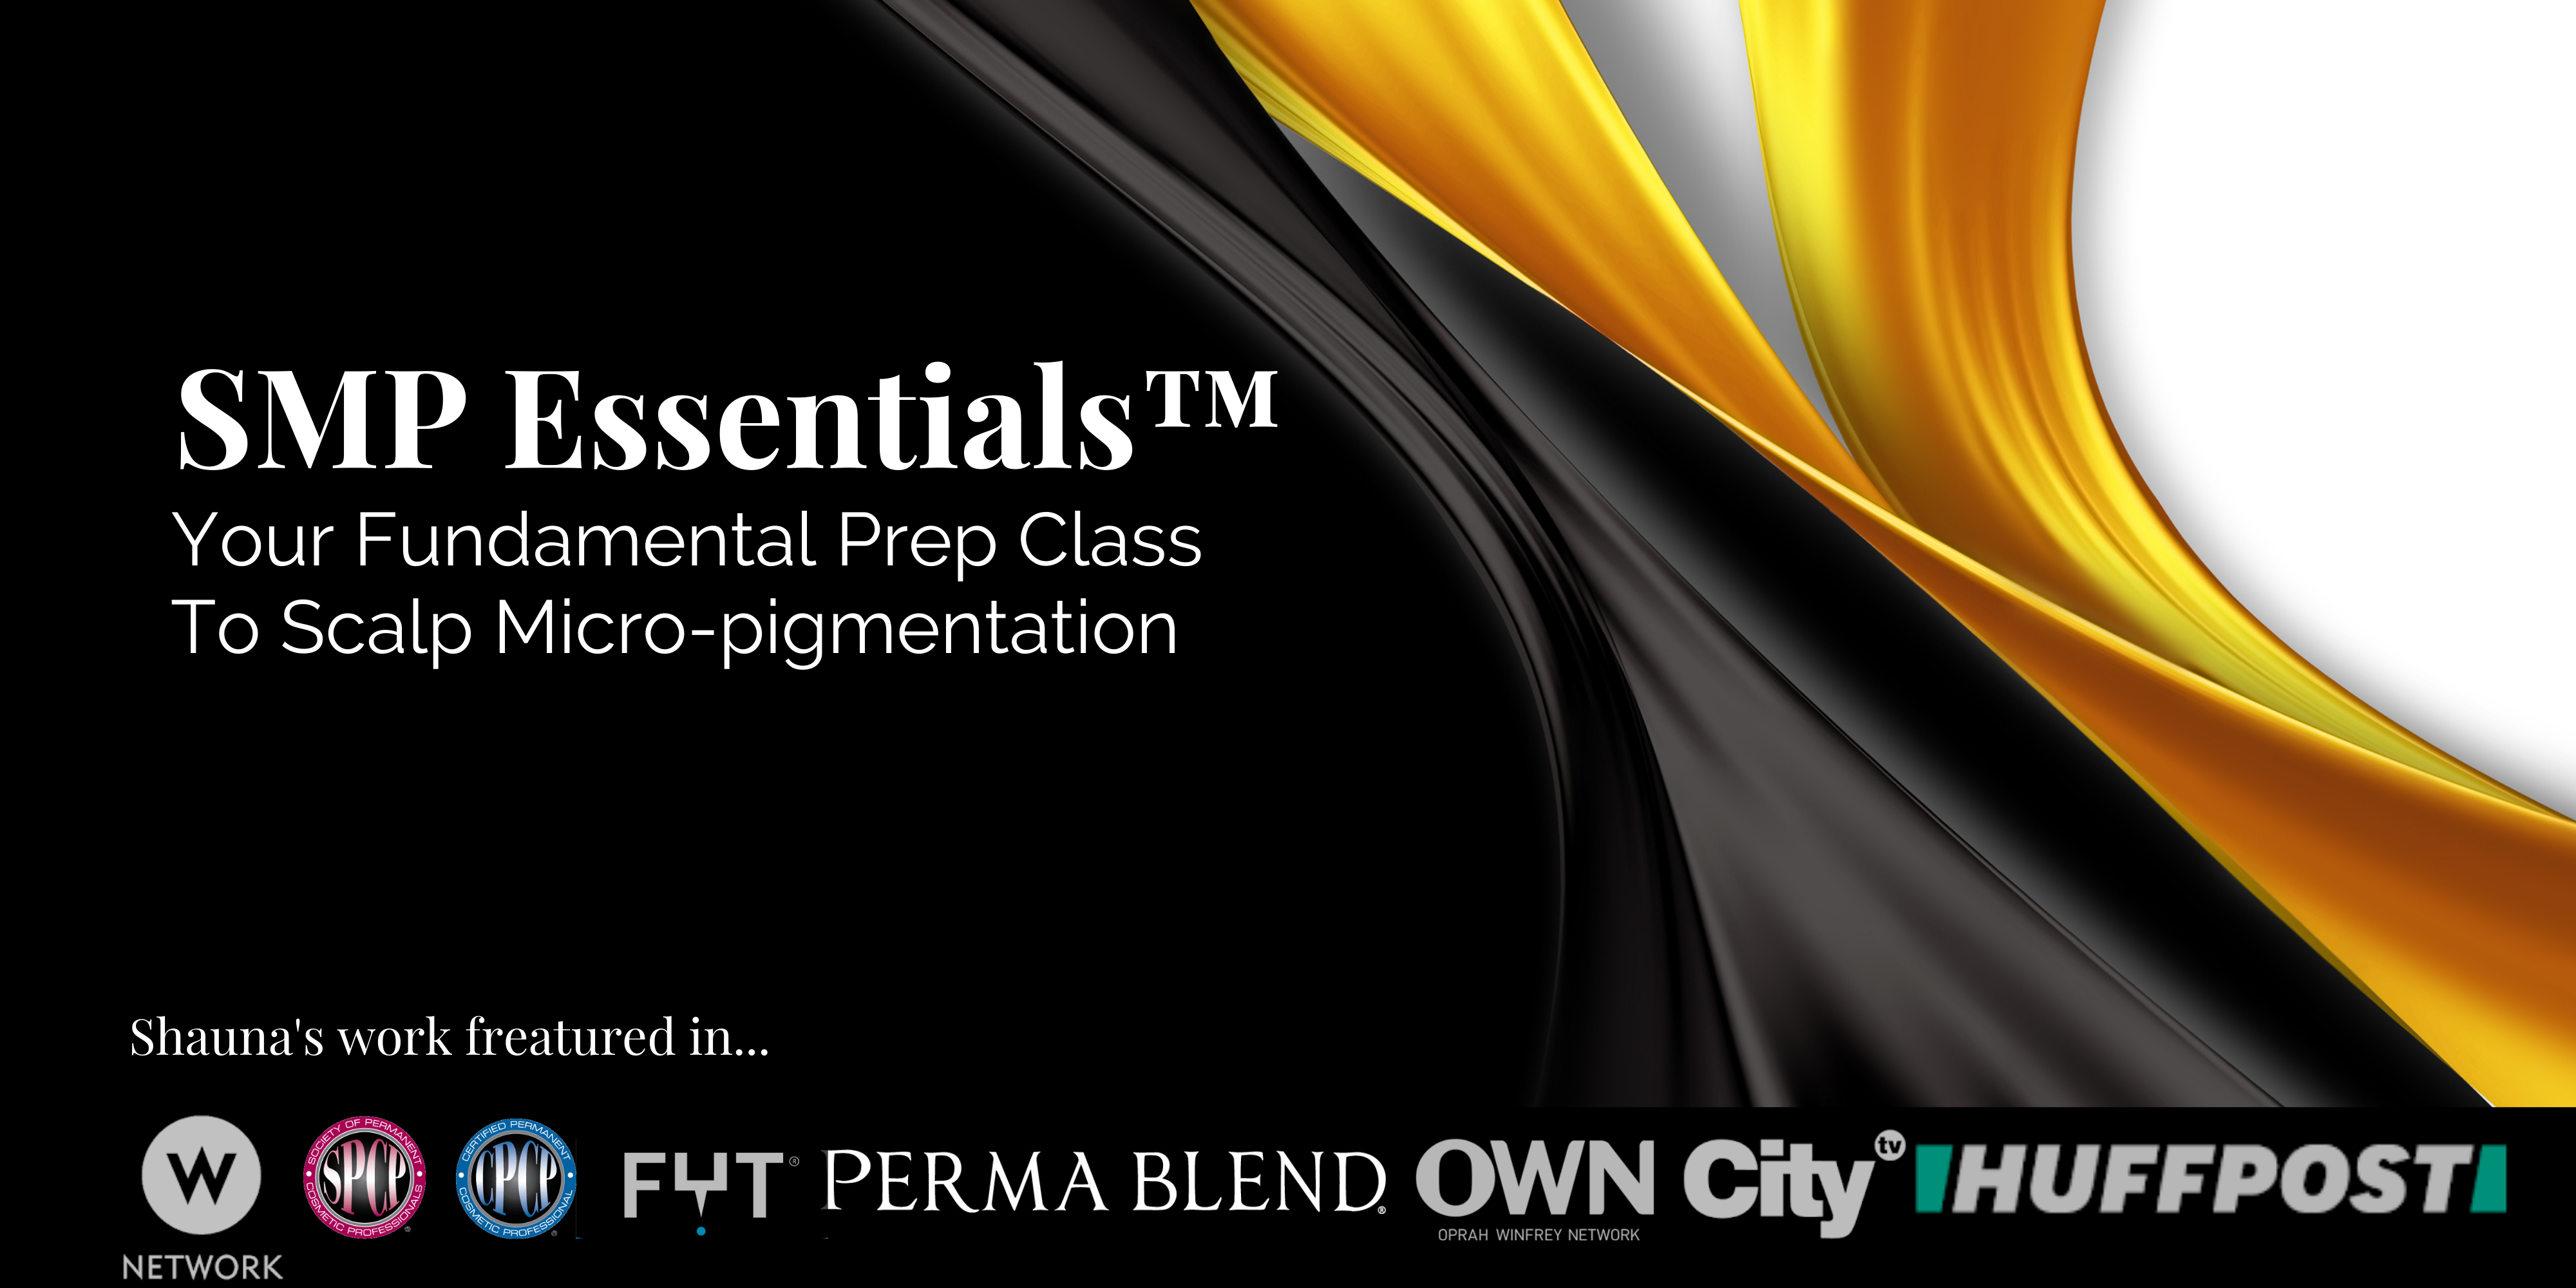 SMP Essentials™, Certificate of Completion, Scalp Micro-Pigmentation, Scalp Micro-Pigmentation Training, SMP Training, Scalp Micro-Pigmentation Training Canada, Perma Blend Colour Theory, FYT Needle Cartridges, SPCP, CPCP, Society of Permanent Cosmetic Professionals, OWN Network, Huff Post, Perma Blend Pigments, SMP Fundamental Training, SMP Online Scalp Class,